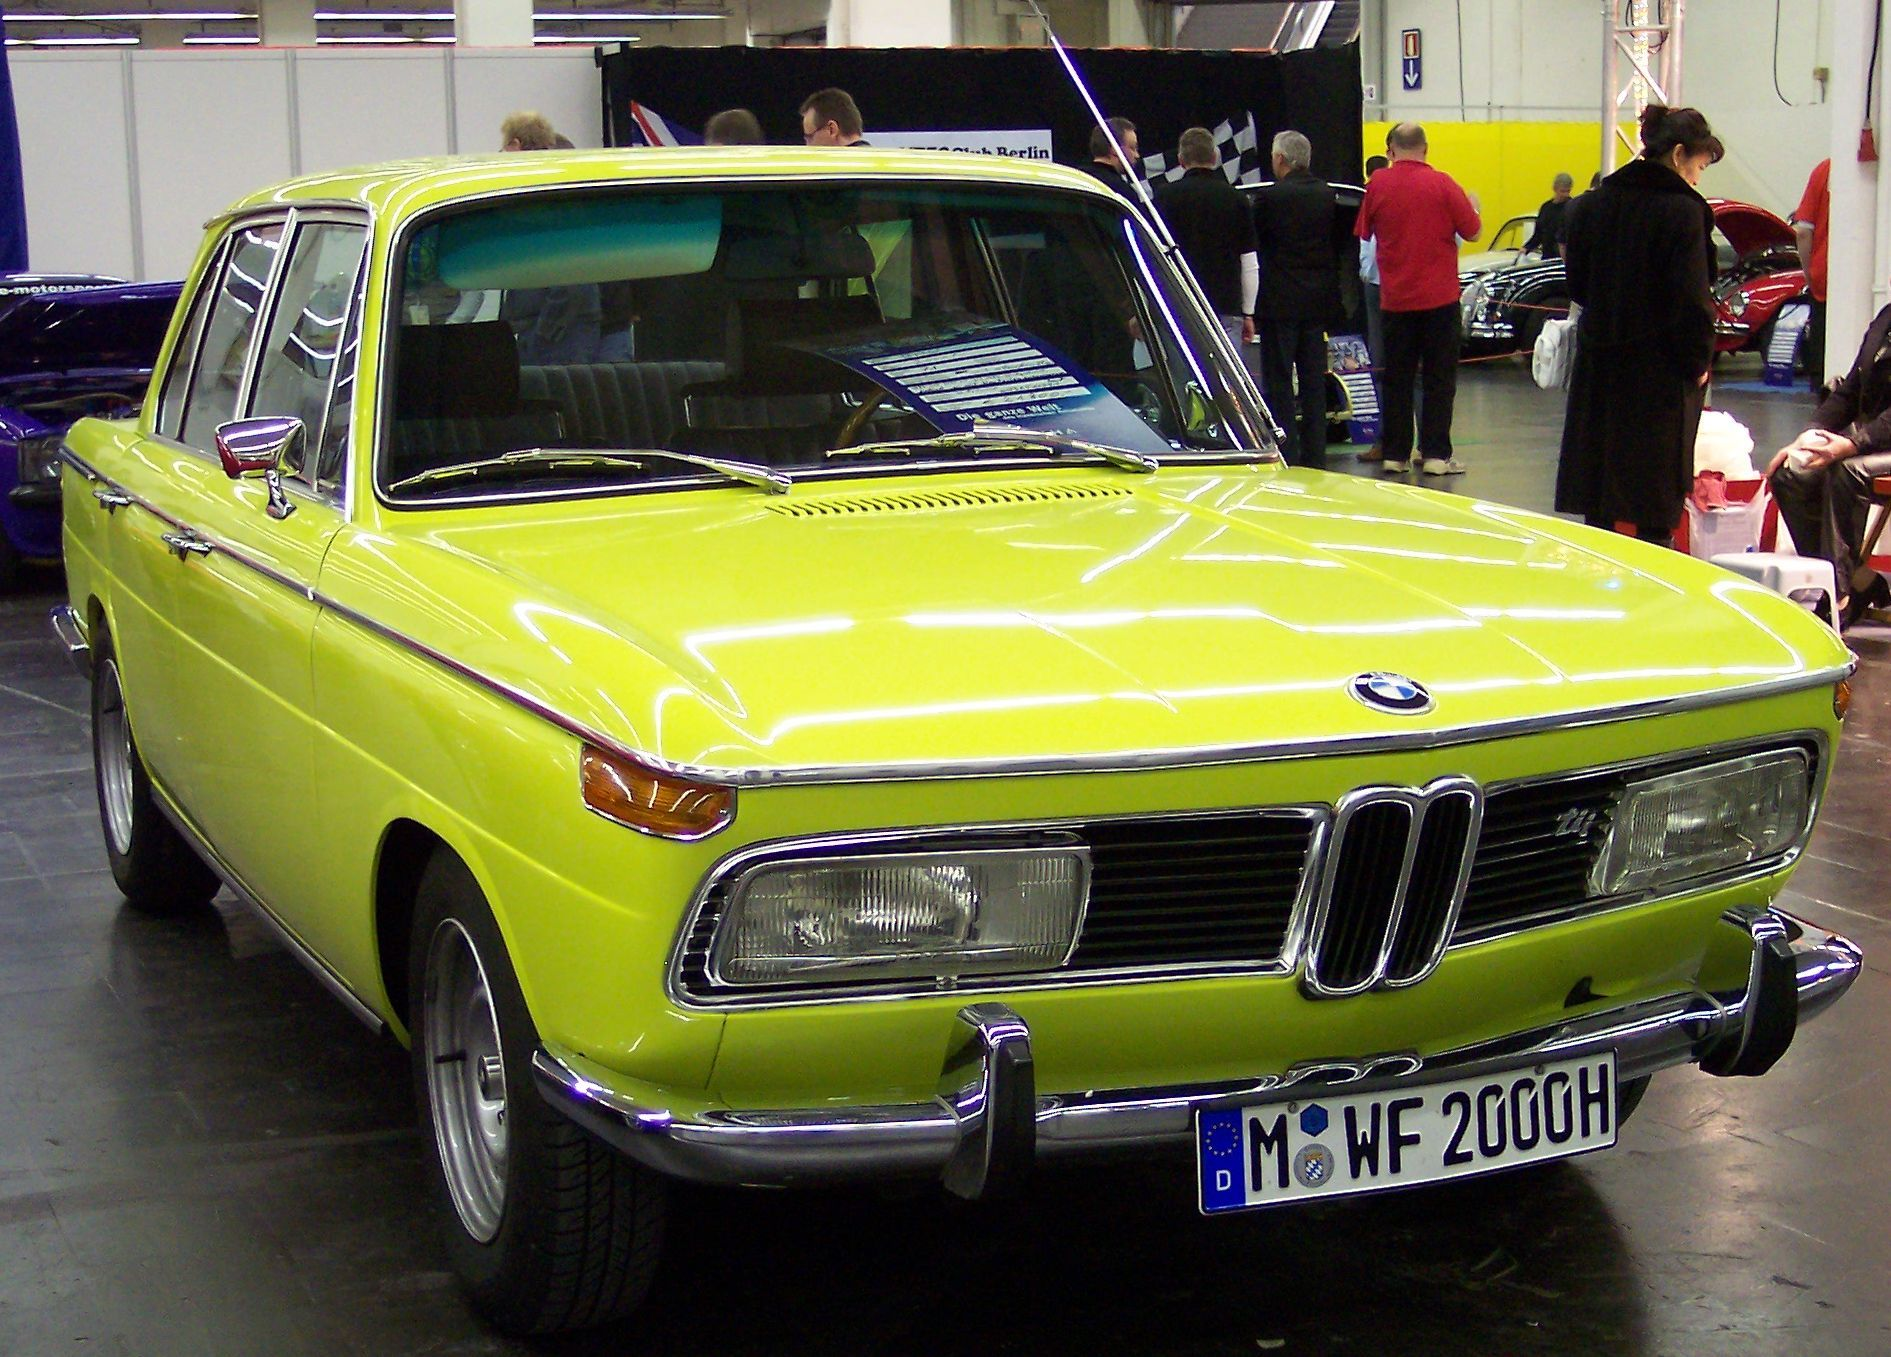 Neue klasse bmw neue klasse 2000 pinterest bmw bmw classic and cars